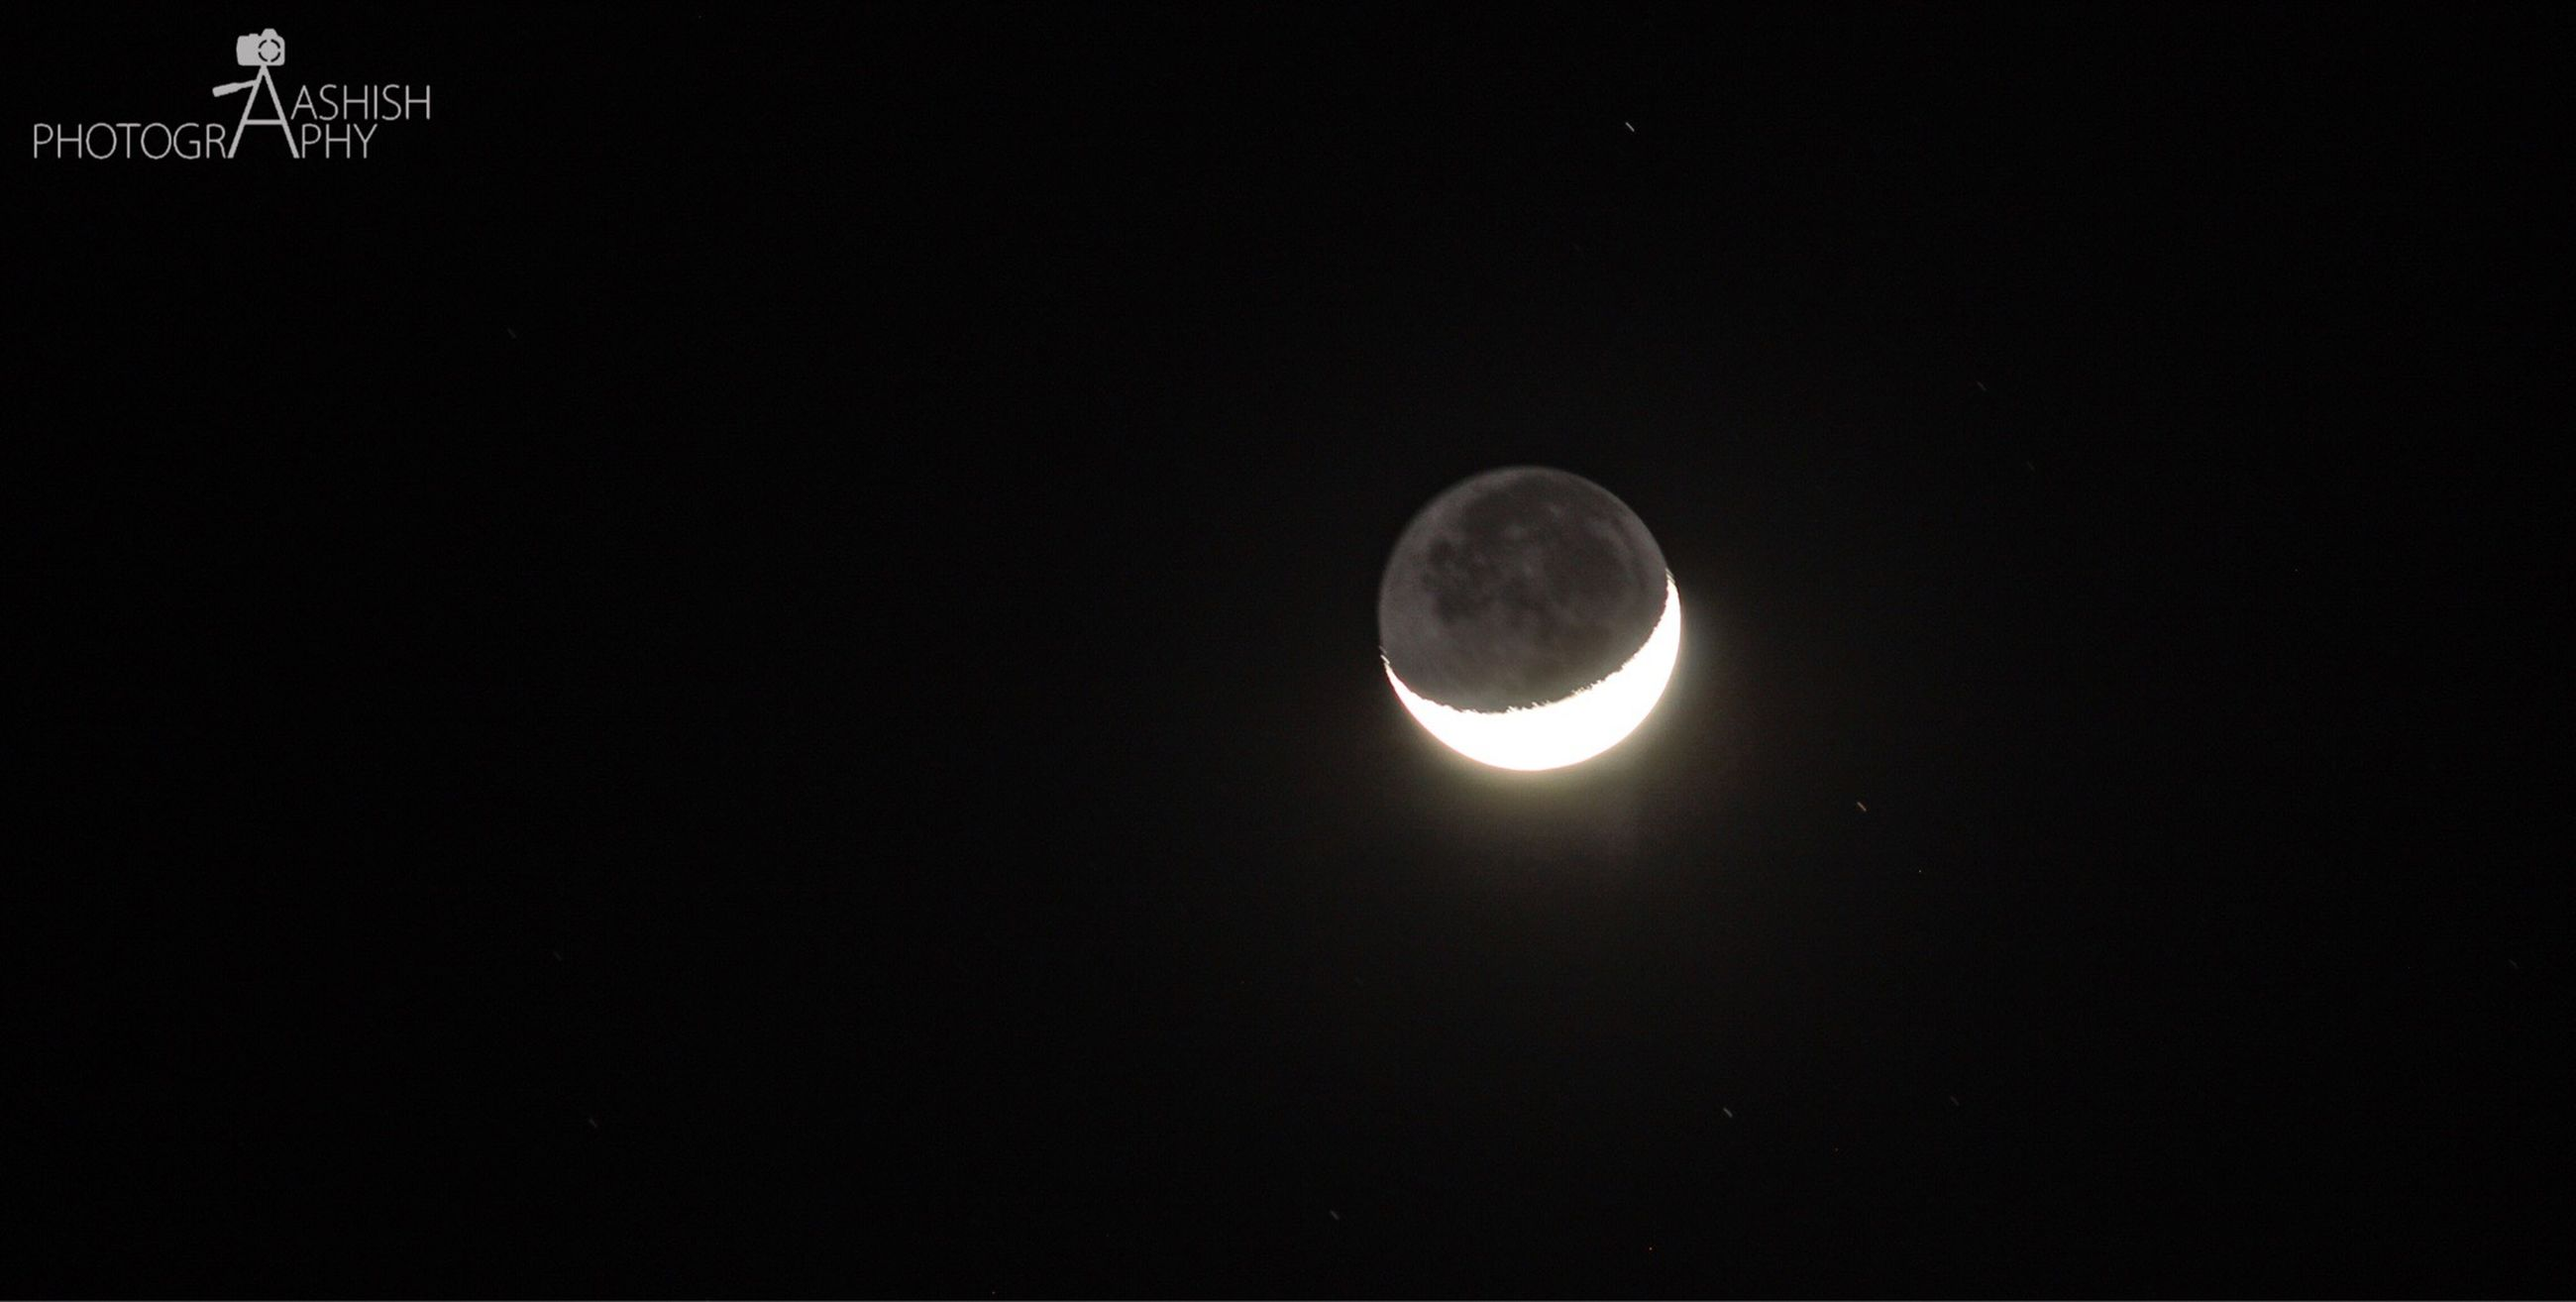 astronomy, night, moon, beauty in nature, low angle view, nature, space, outdoors, no people, scenics, tranquility, tranquil scene, natural phenomenon, sky, planetary moon, solar eclipse, moon surface